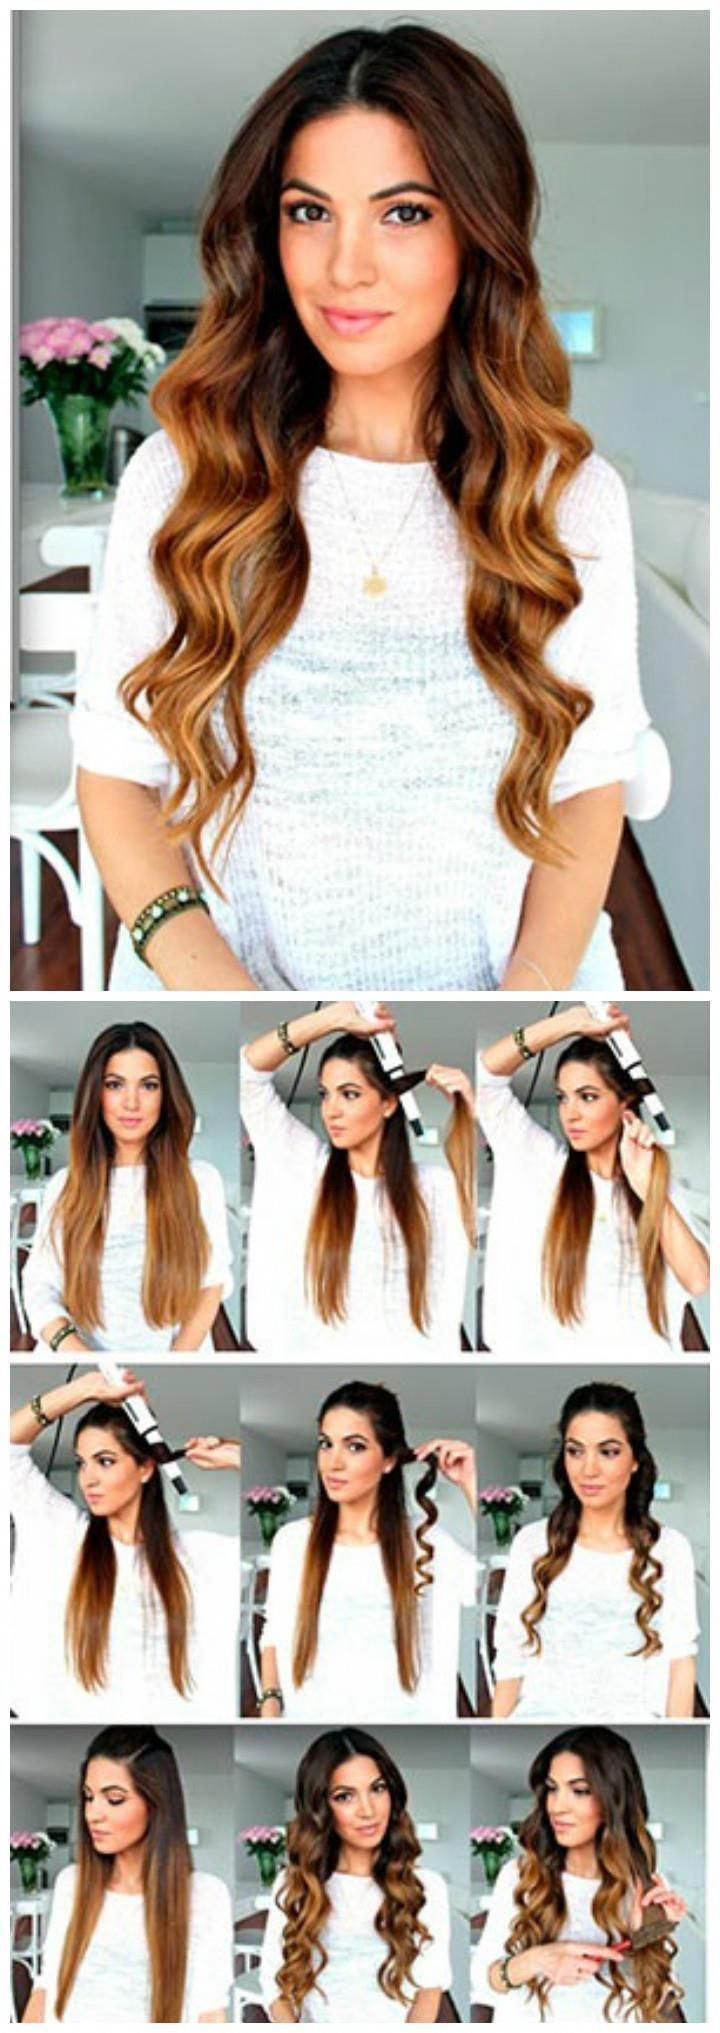 DIY Curly Wavy Hairstyle  25 DIY Hairstyles You Can Do With These Step by Step Tutorials #Diyhairstyles #Easyhairstyles